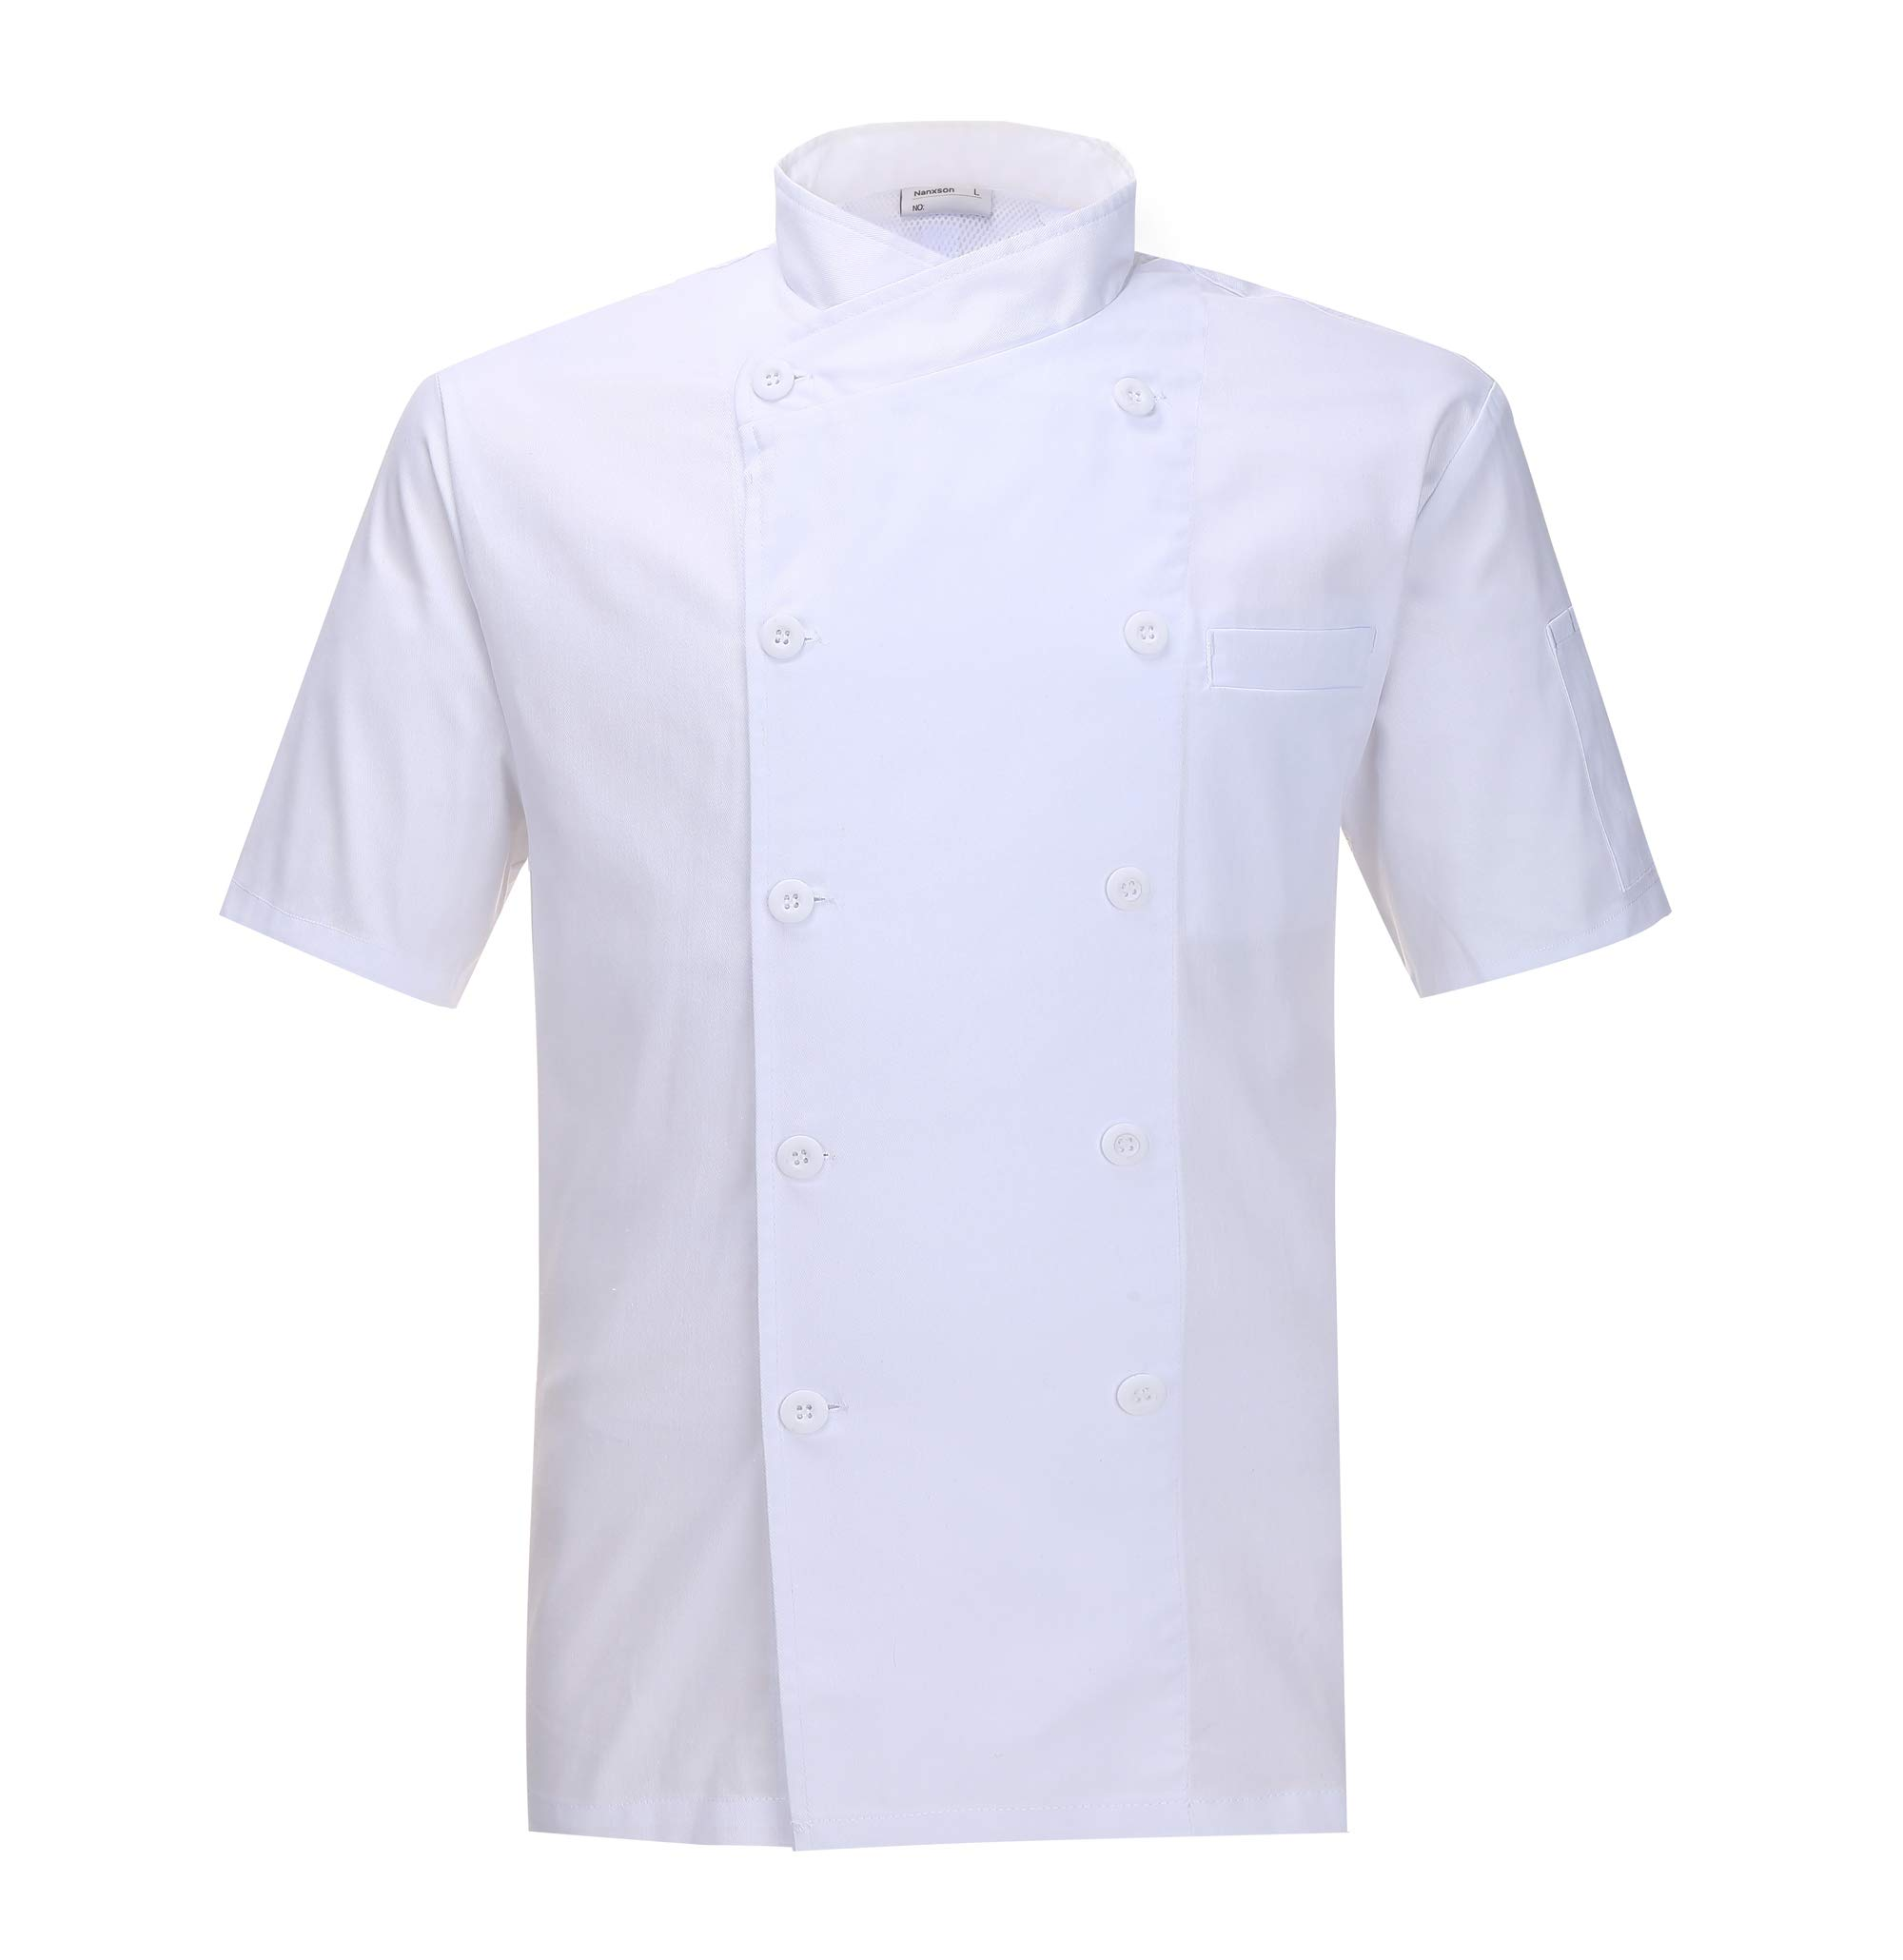 Nanxson(TM Kitchen Cotton Uniform Chef Working Coat with Air Mesh CFM0029 (White Short Sleeves, XXL)